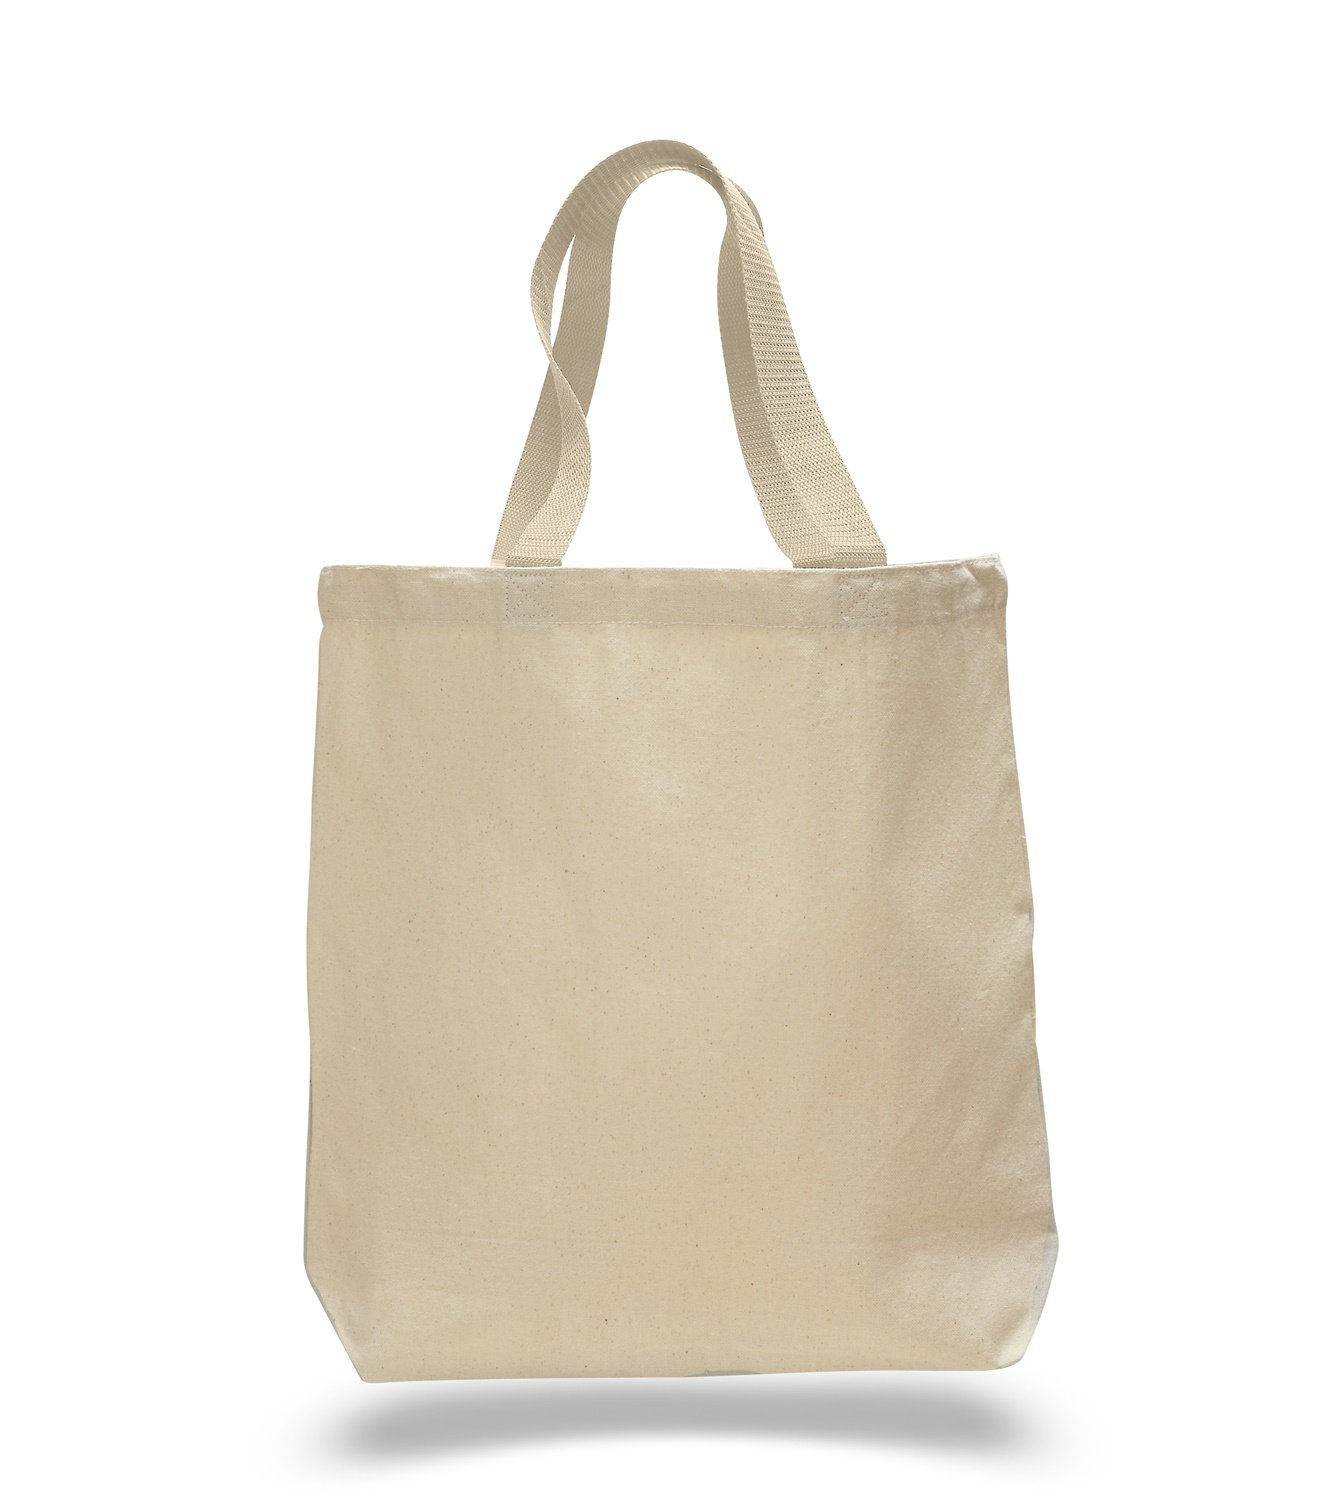 (Set of 12) 12 Pack- Wholesale Cotton Canvas Gusset and Contrasting Handles Tote Bag (Natural) by ToteBagFactory B010RBDVXE ナチュラル ナチュラル